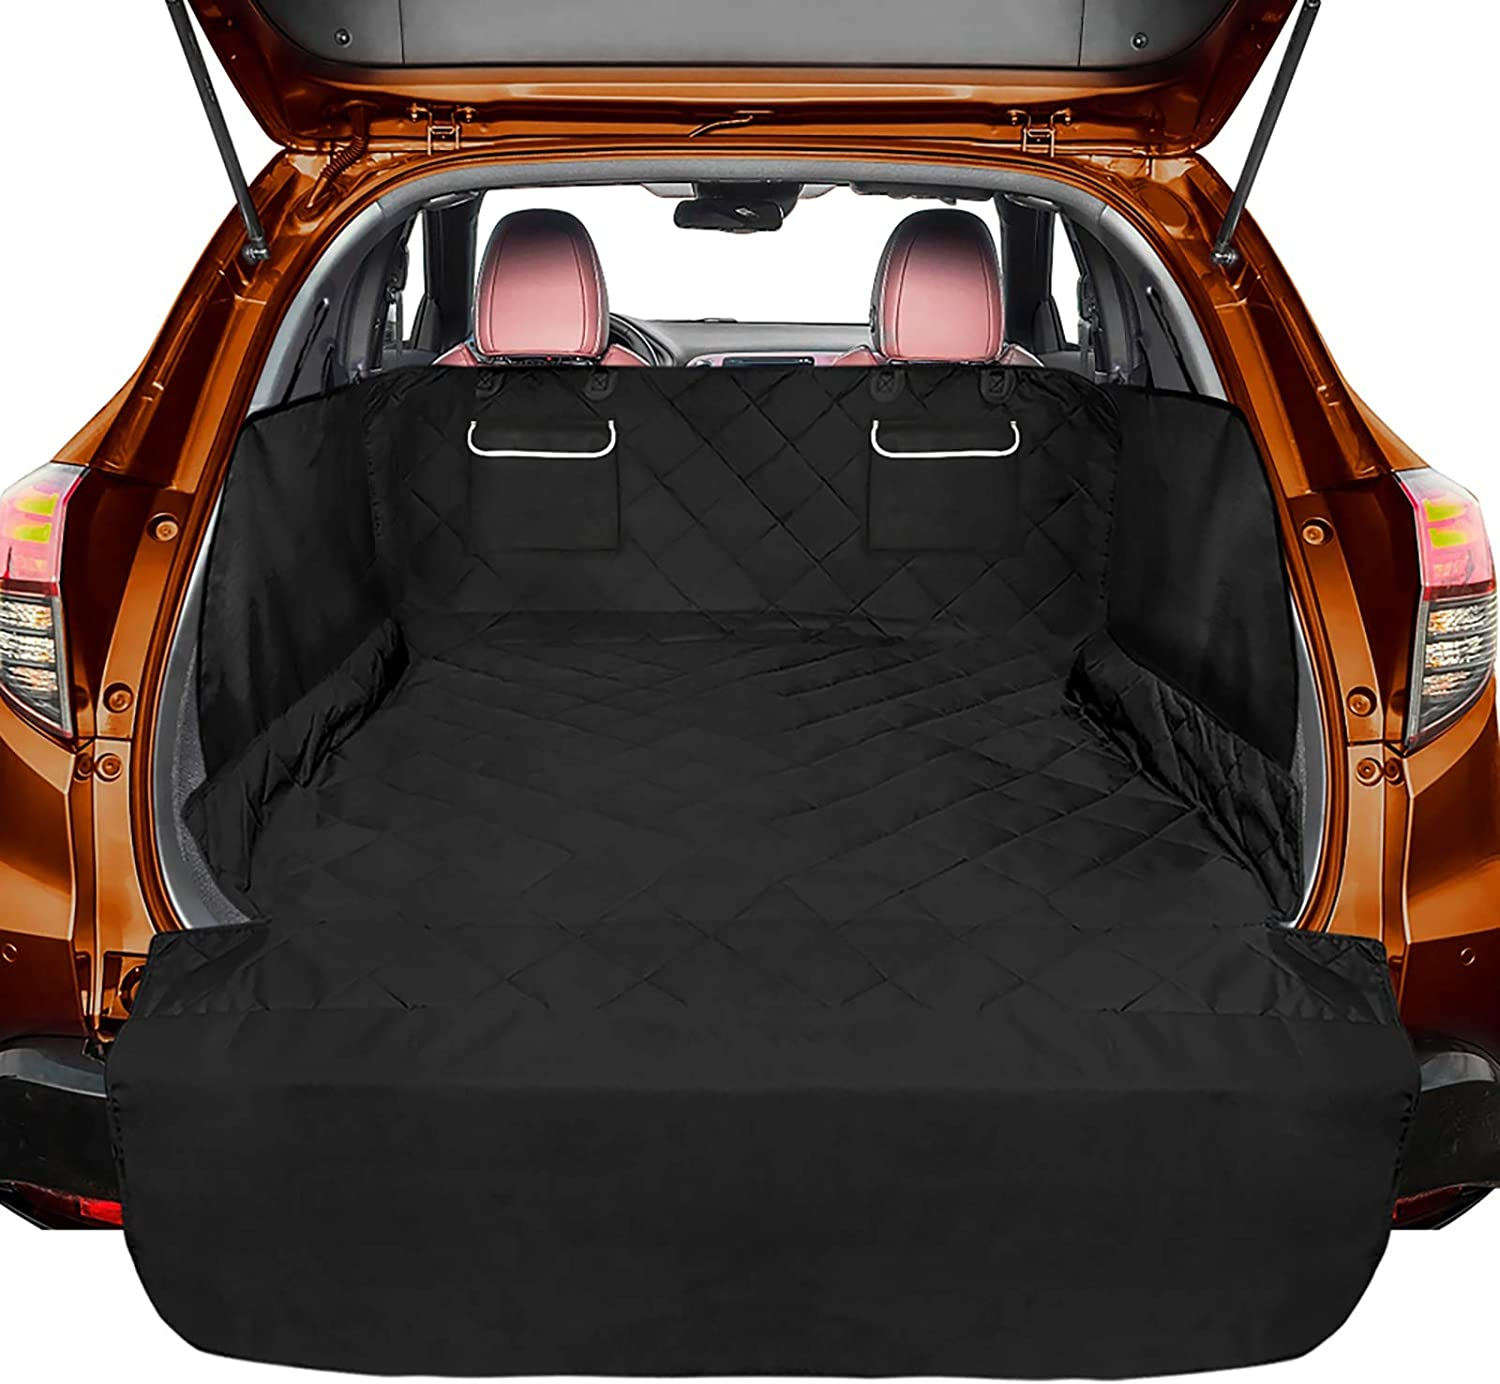 Car boot liner cover suitable for 3 door vehicle protective cover for bumper